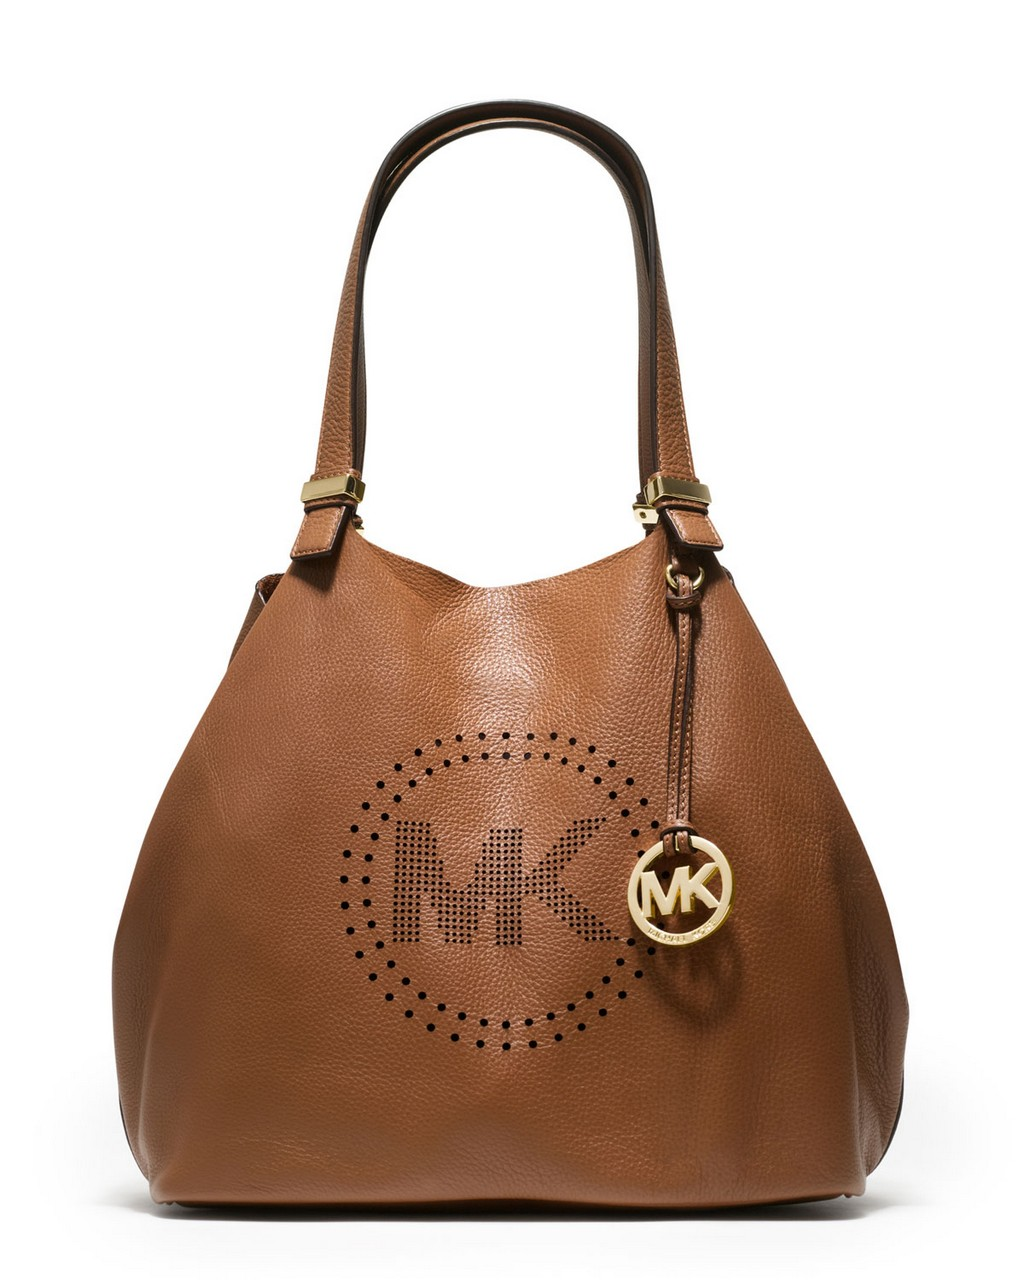 Michael kors handbag for Designer bad